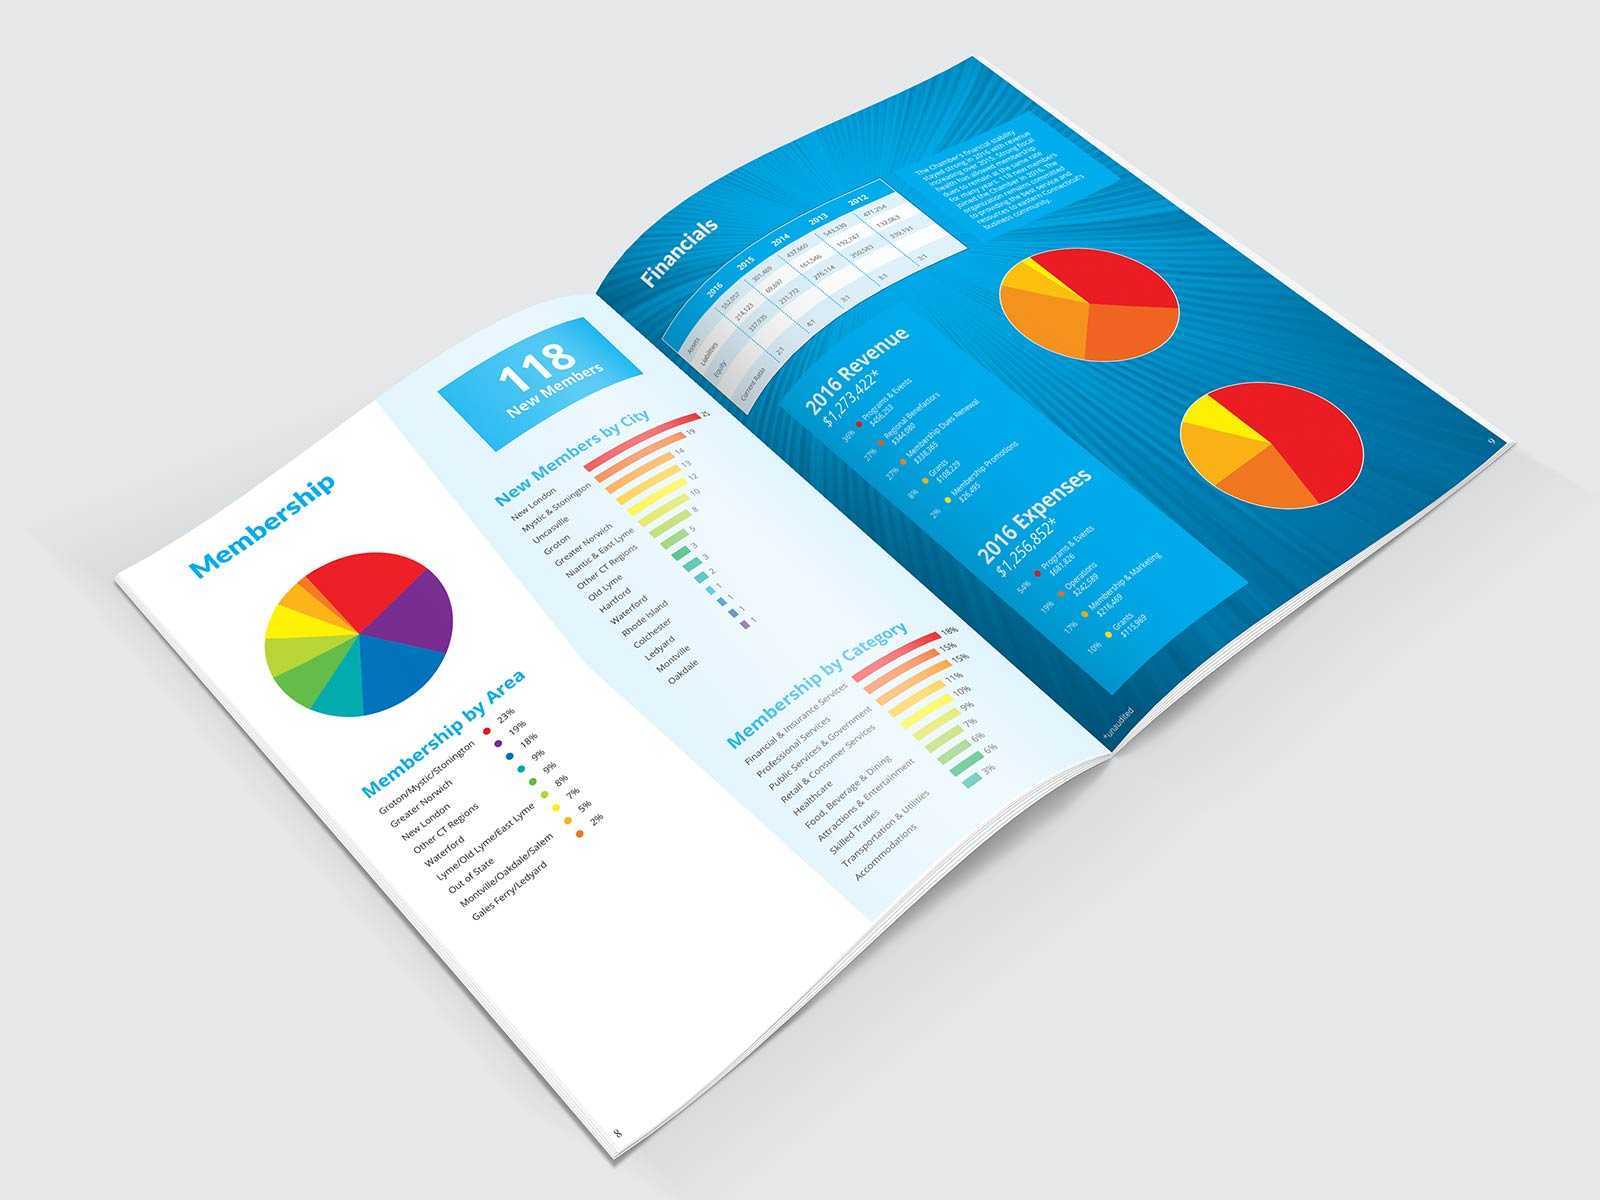 Annual report with statistics and graphs